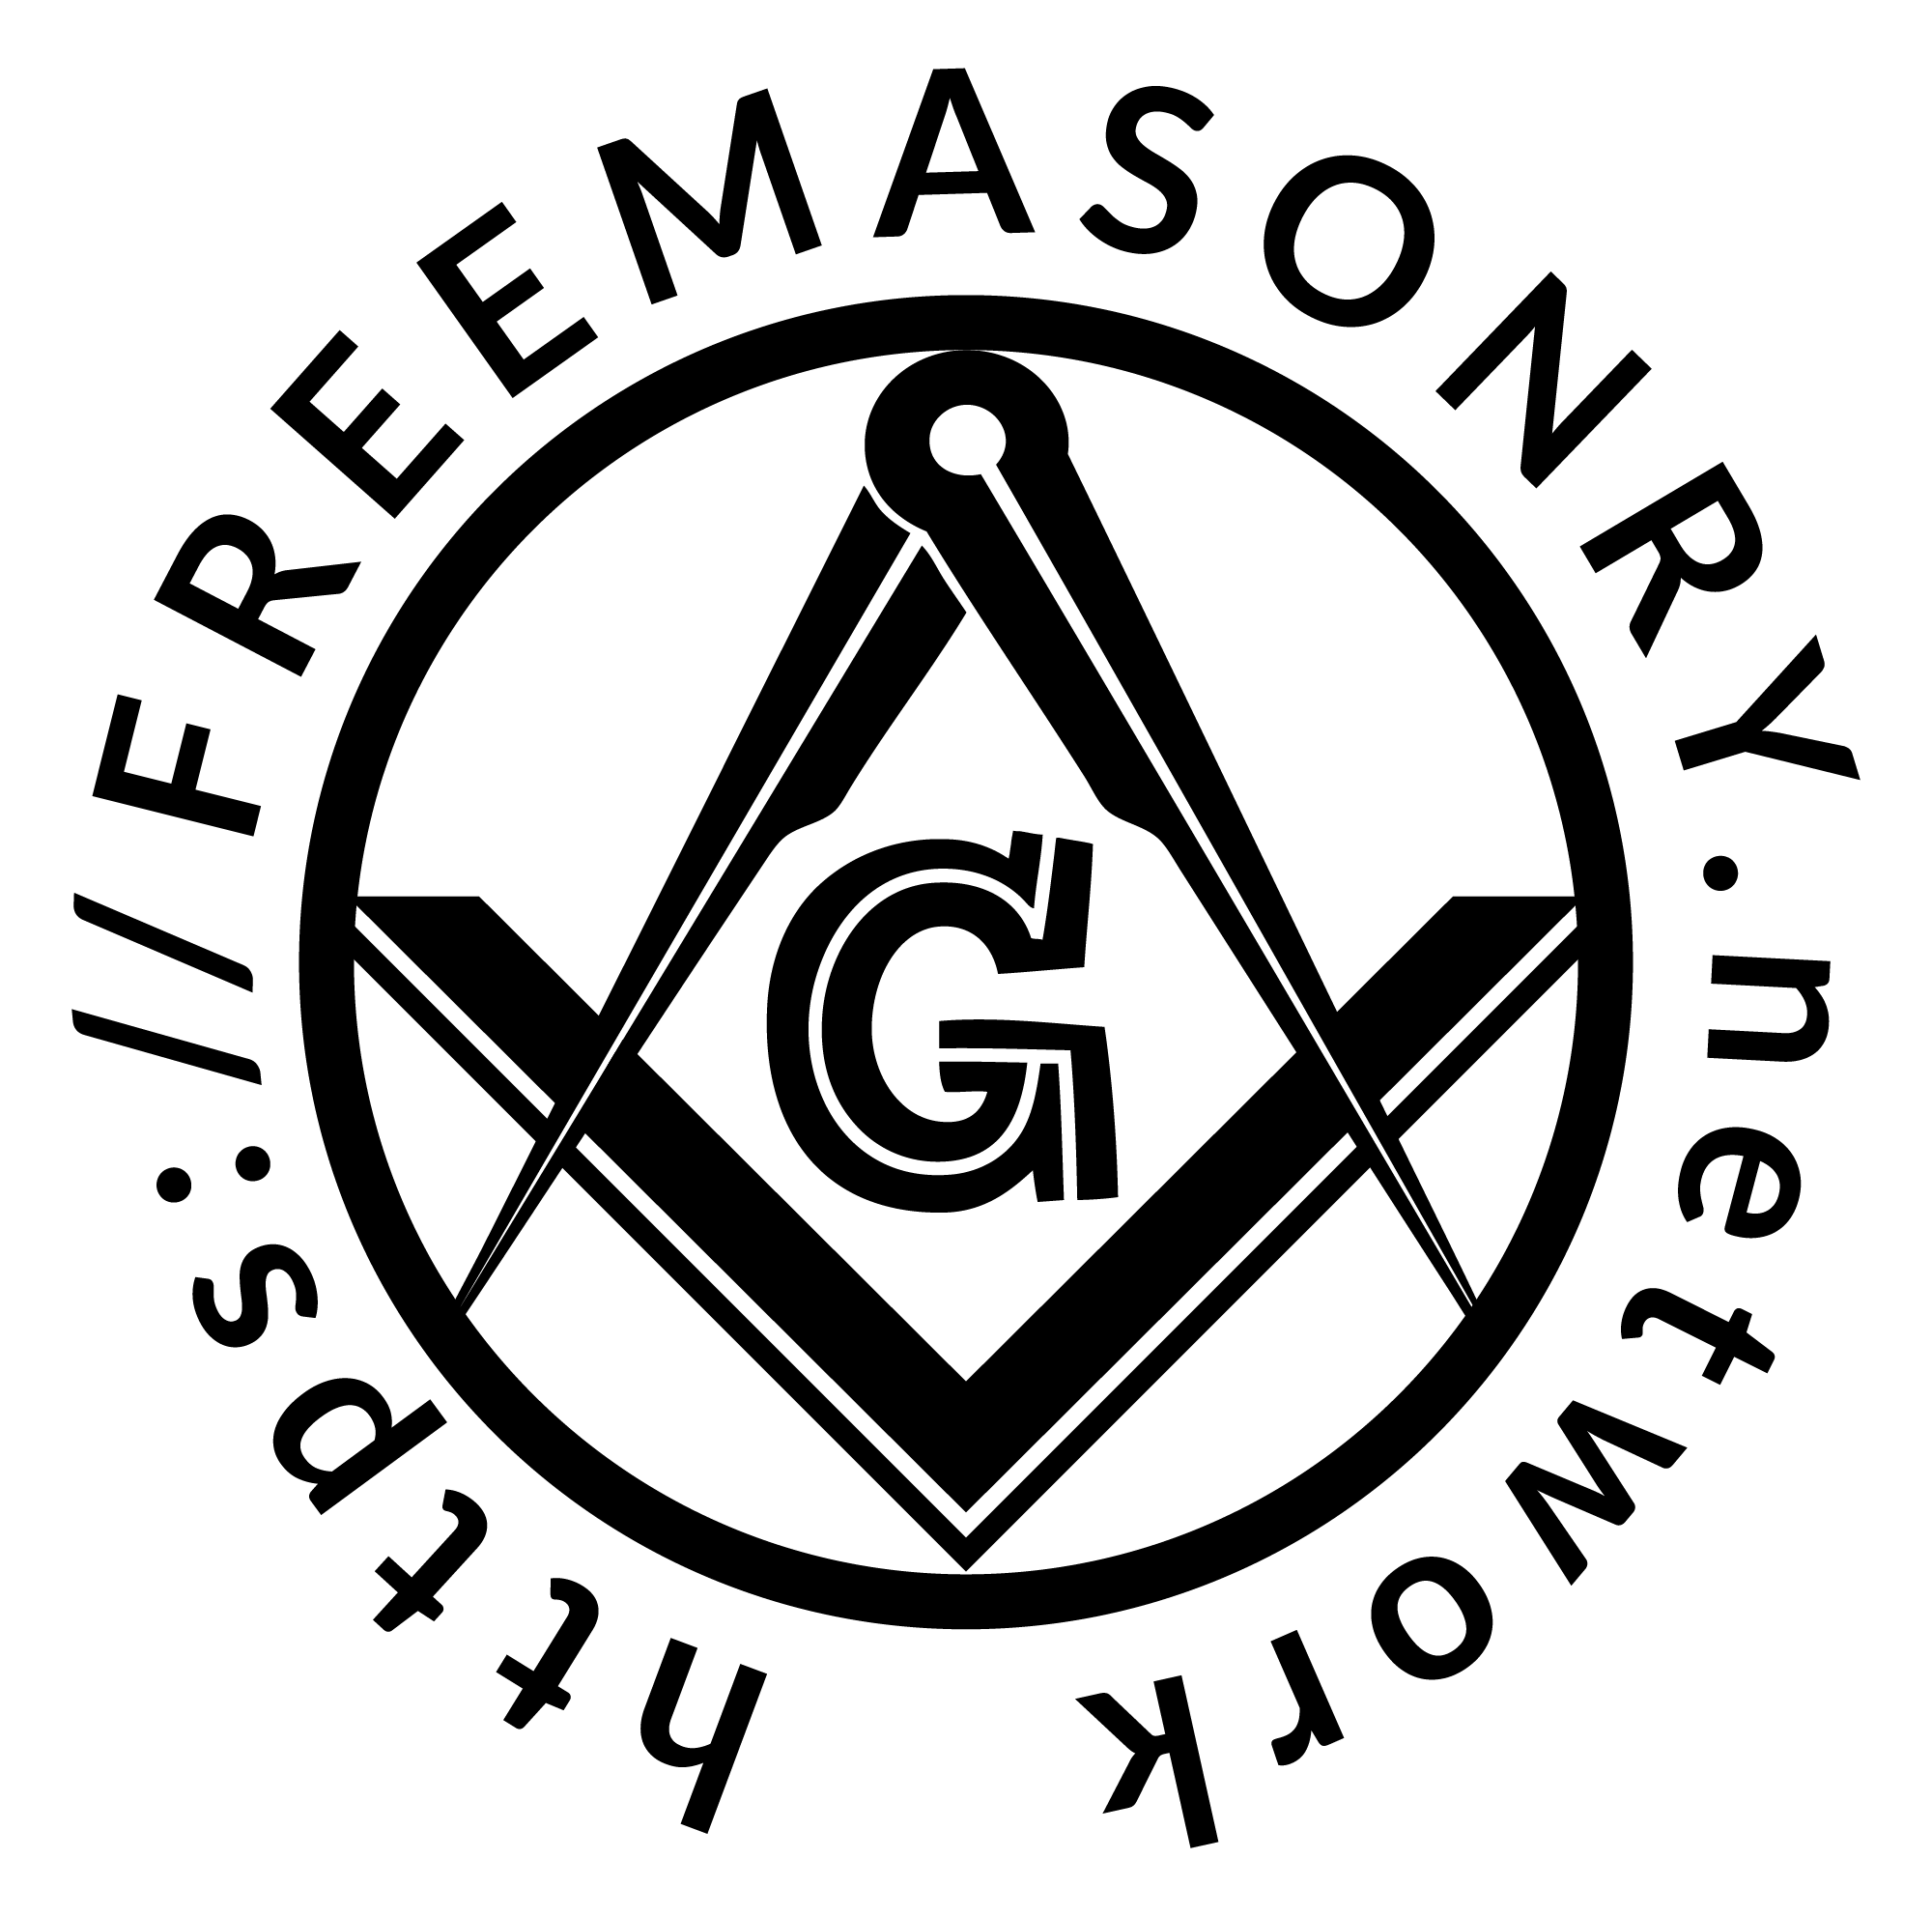 MASONIC FORGET ME NOT